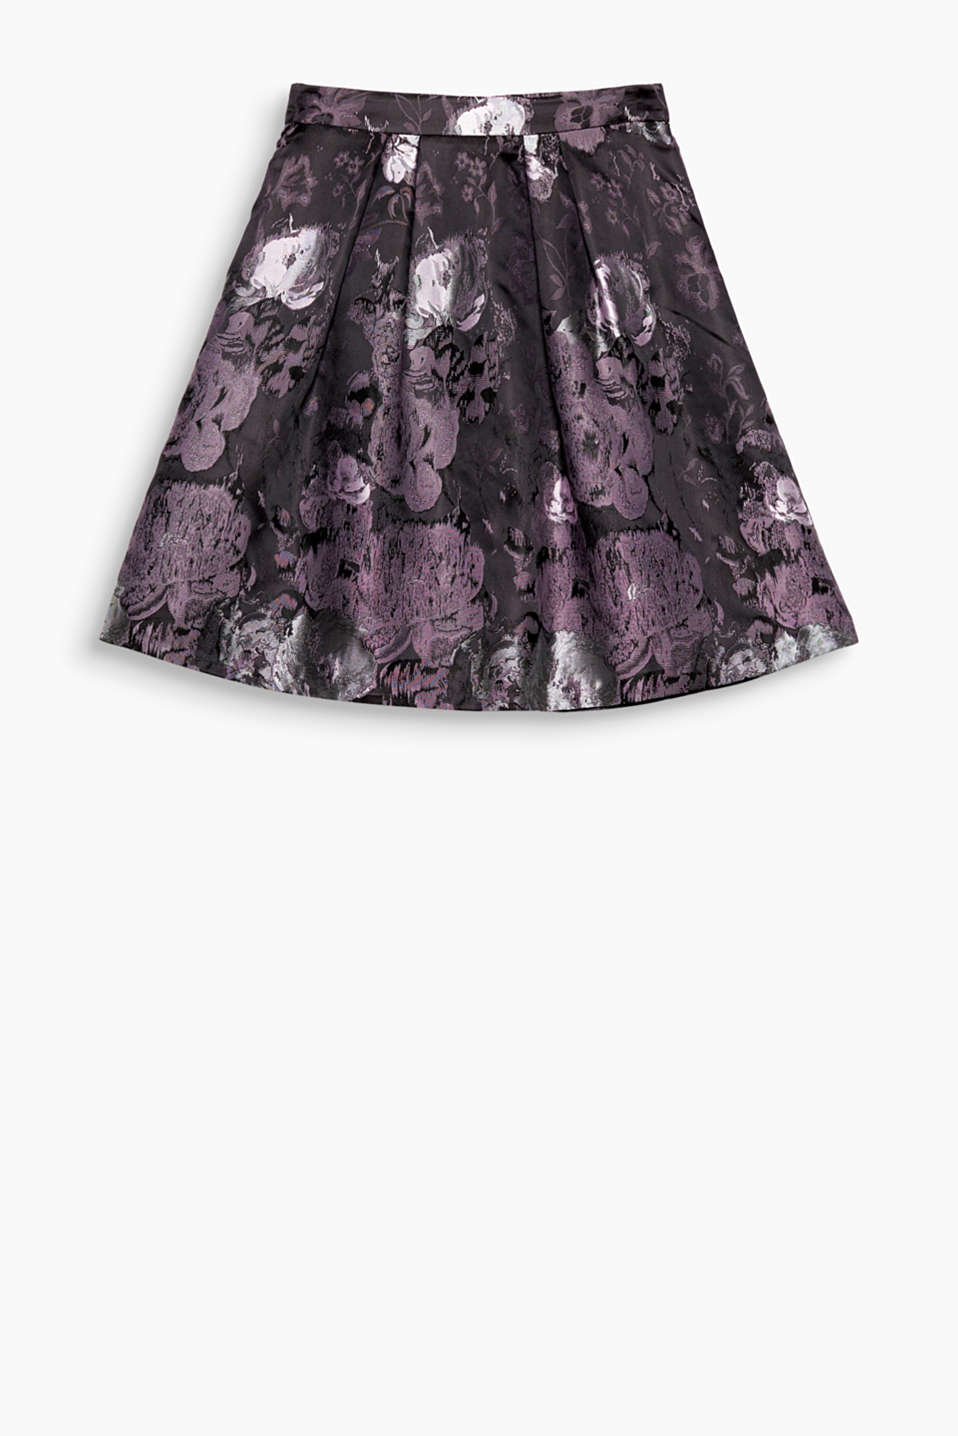 Swirling party skirt with shimmering jacquard flowers